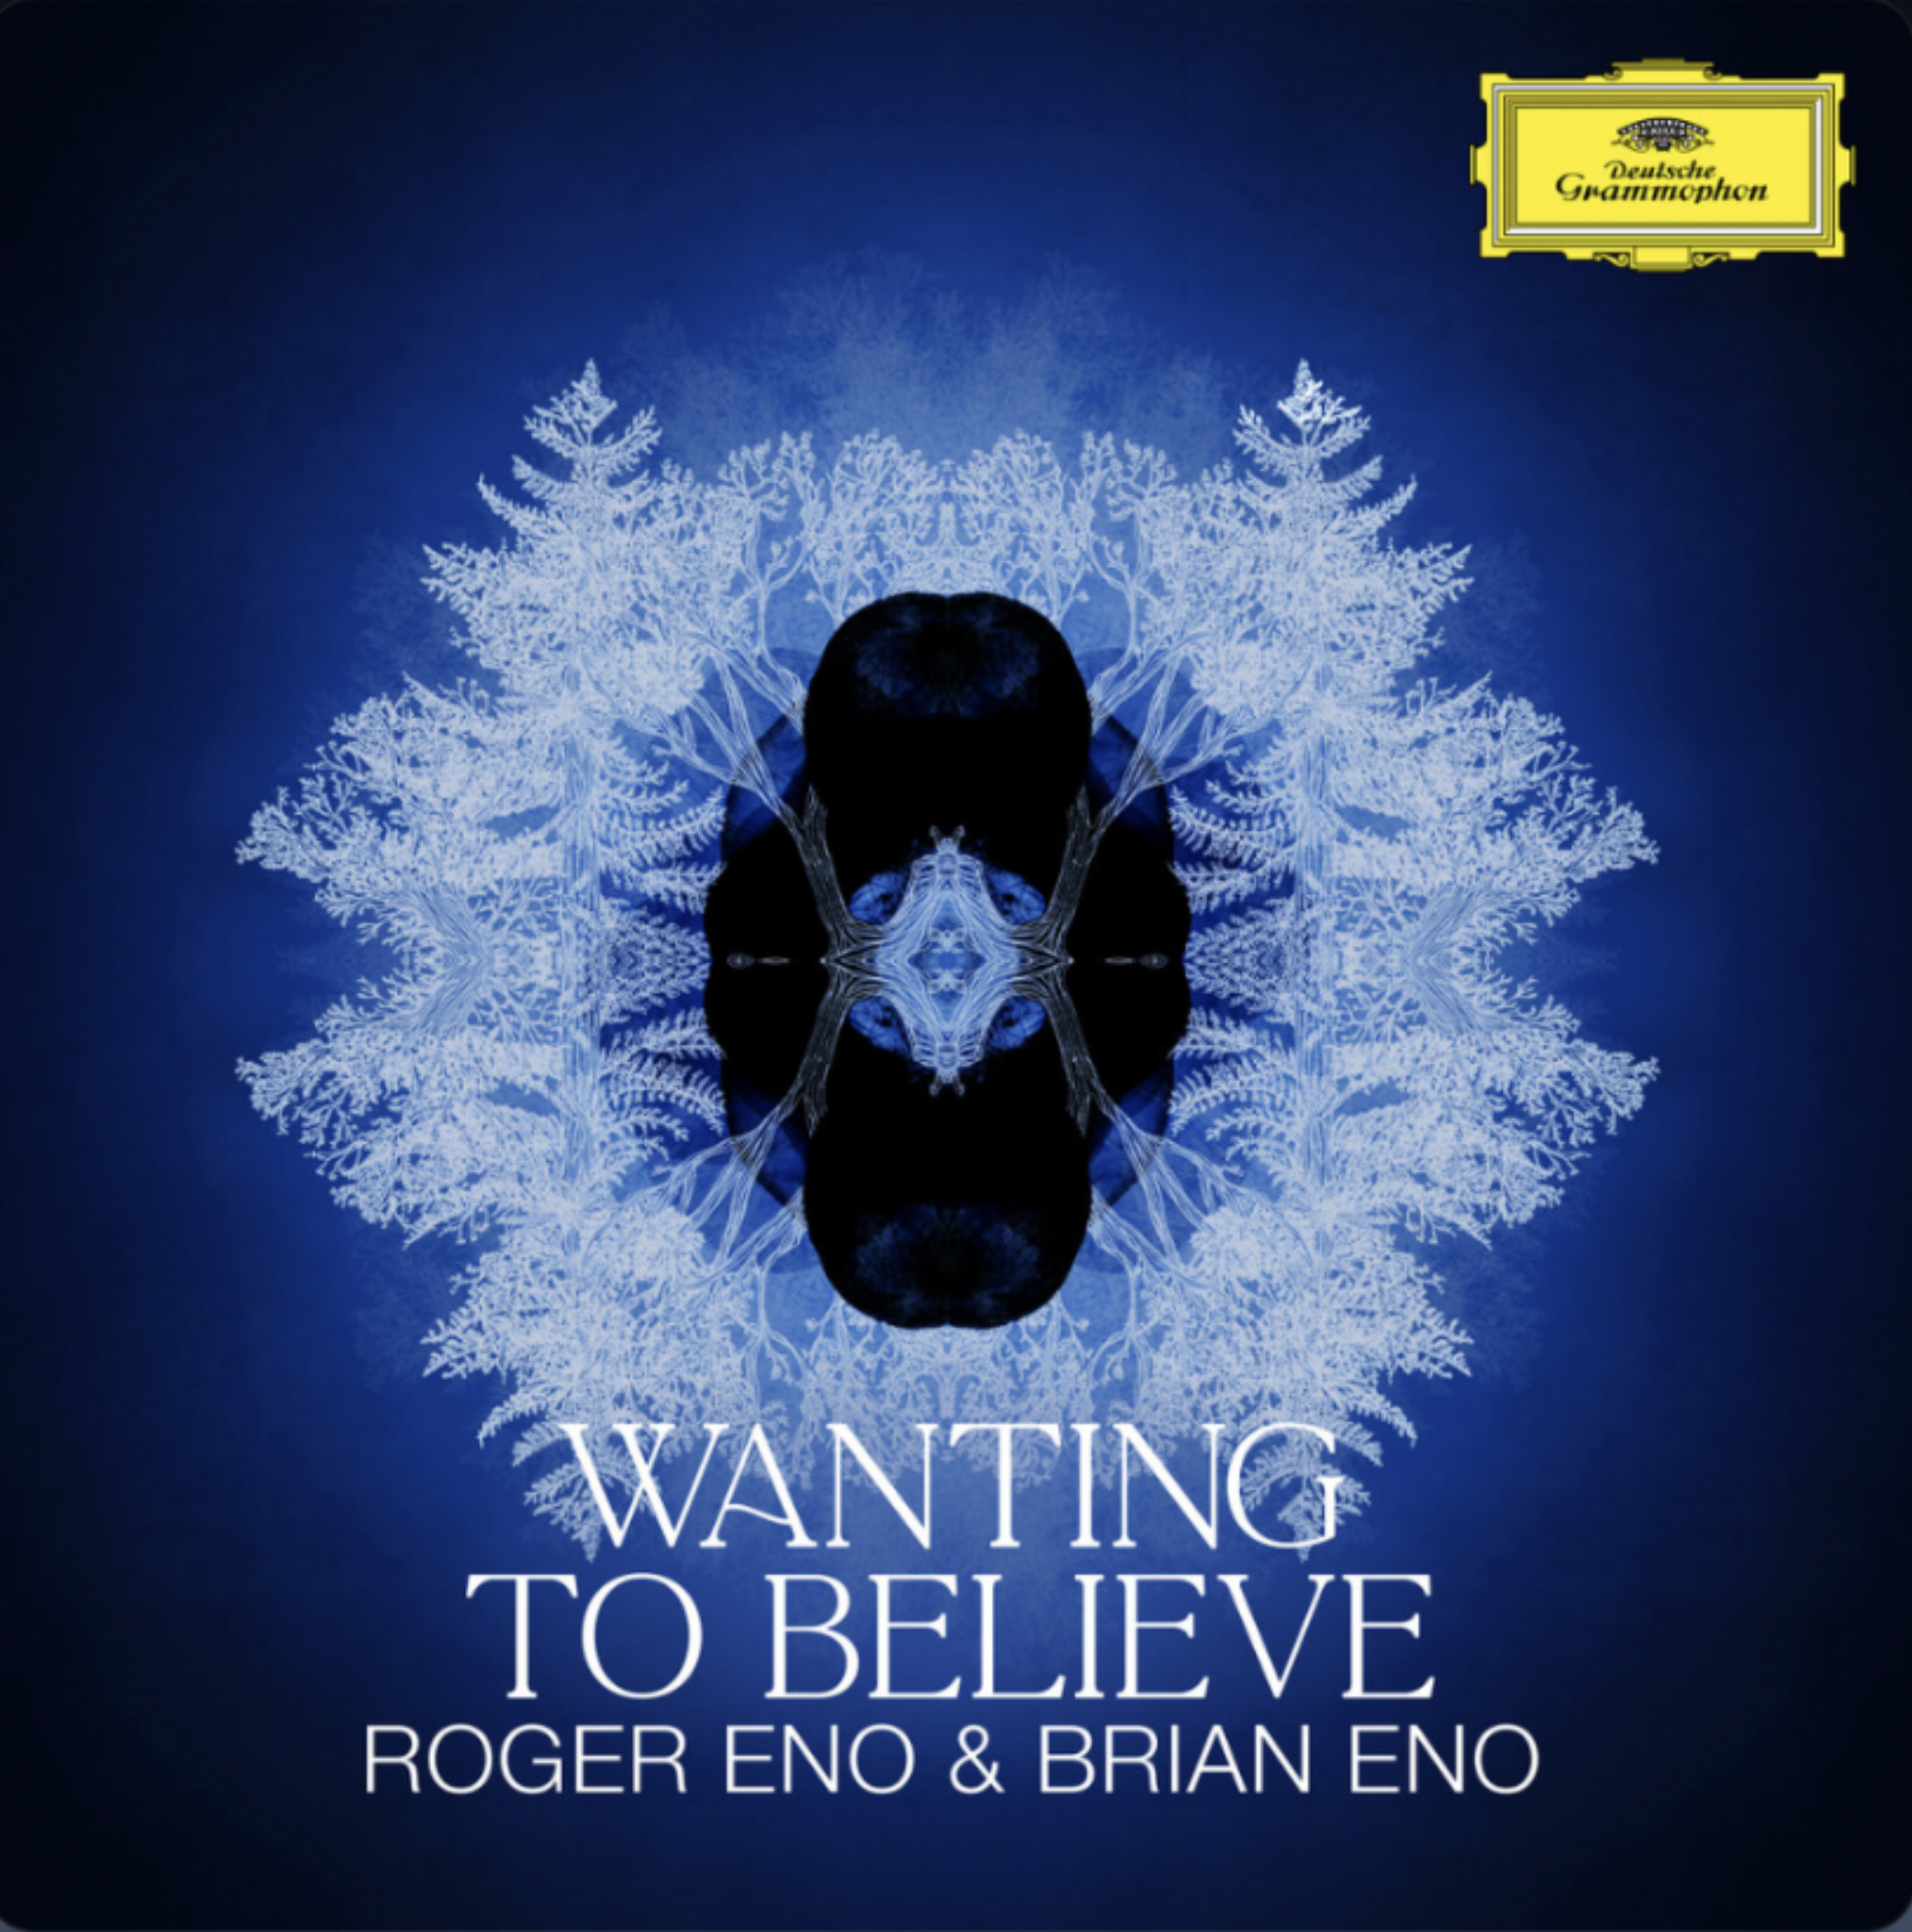 Roger Eno & Brian Eno – Wanting To Believe (Oh Holy Night)